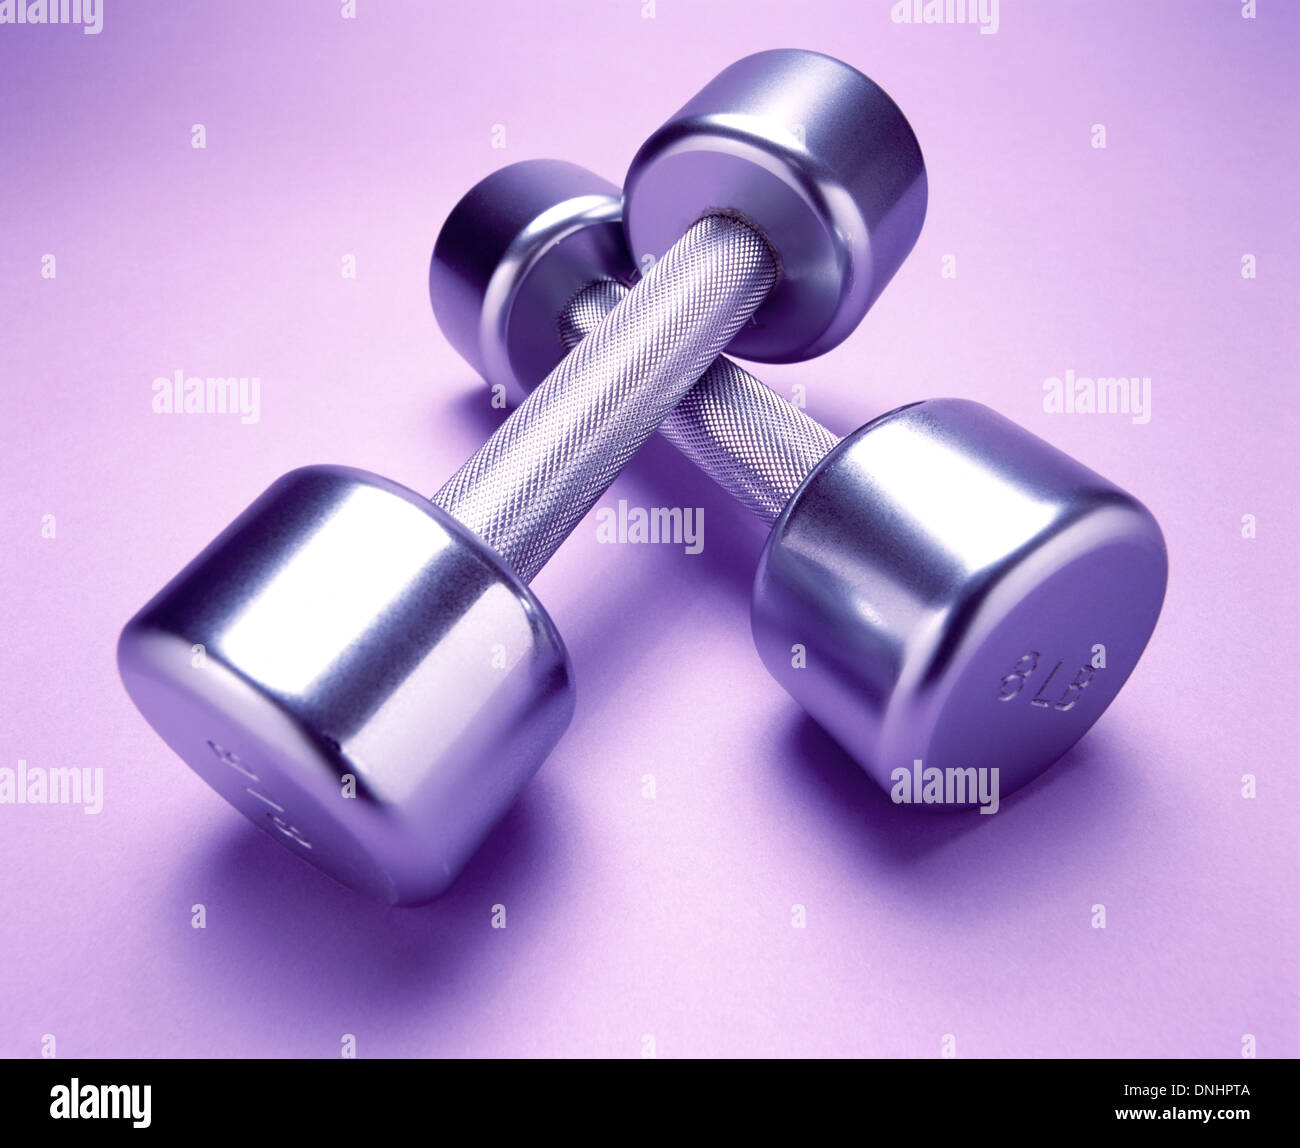 A pair of exercise metal free weights on a light purple exercise mat. - Stock Image